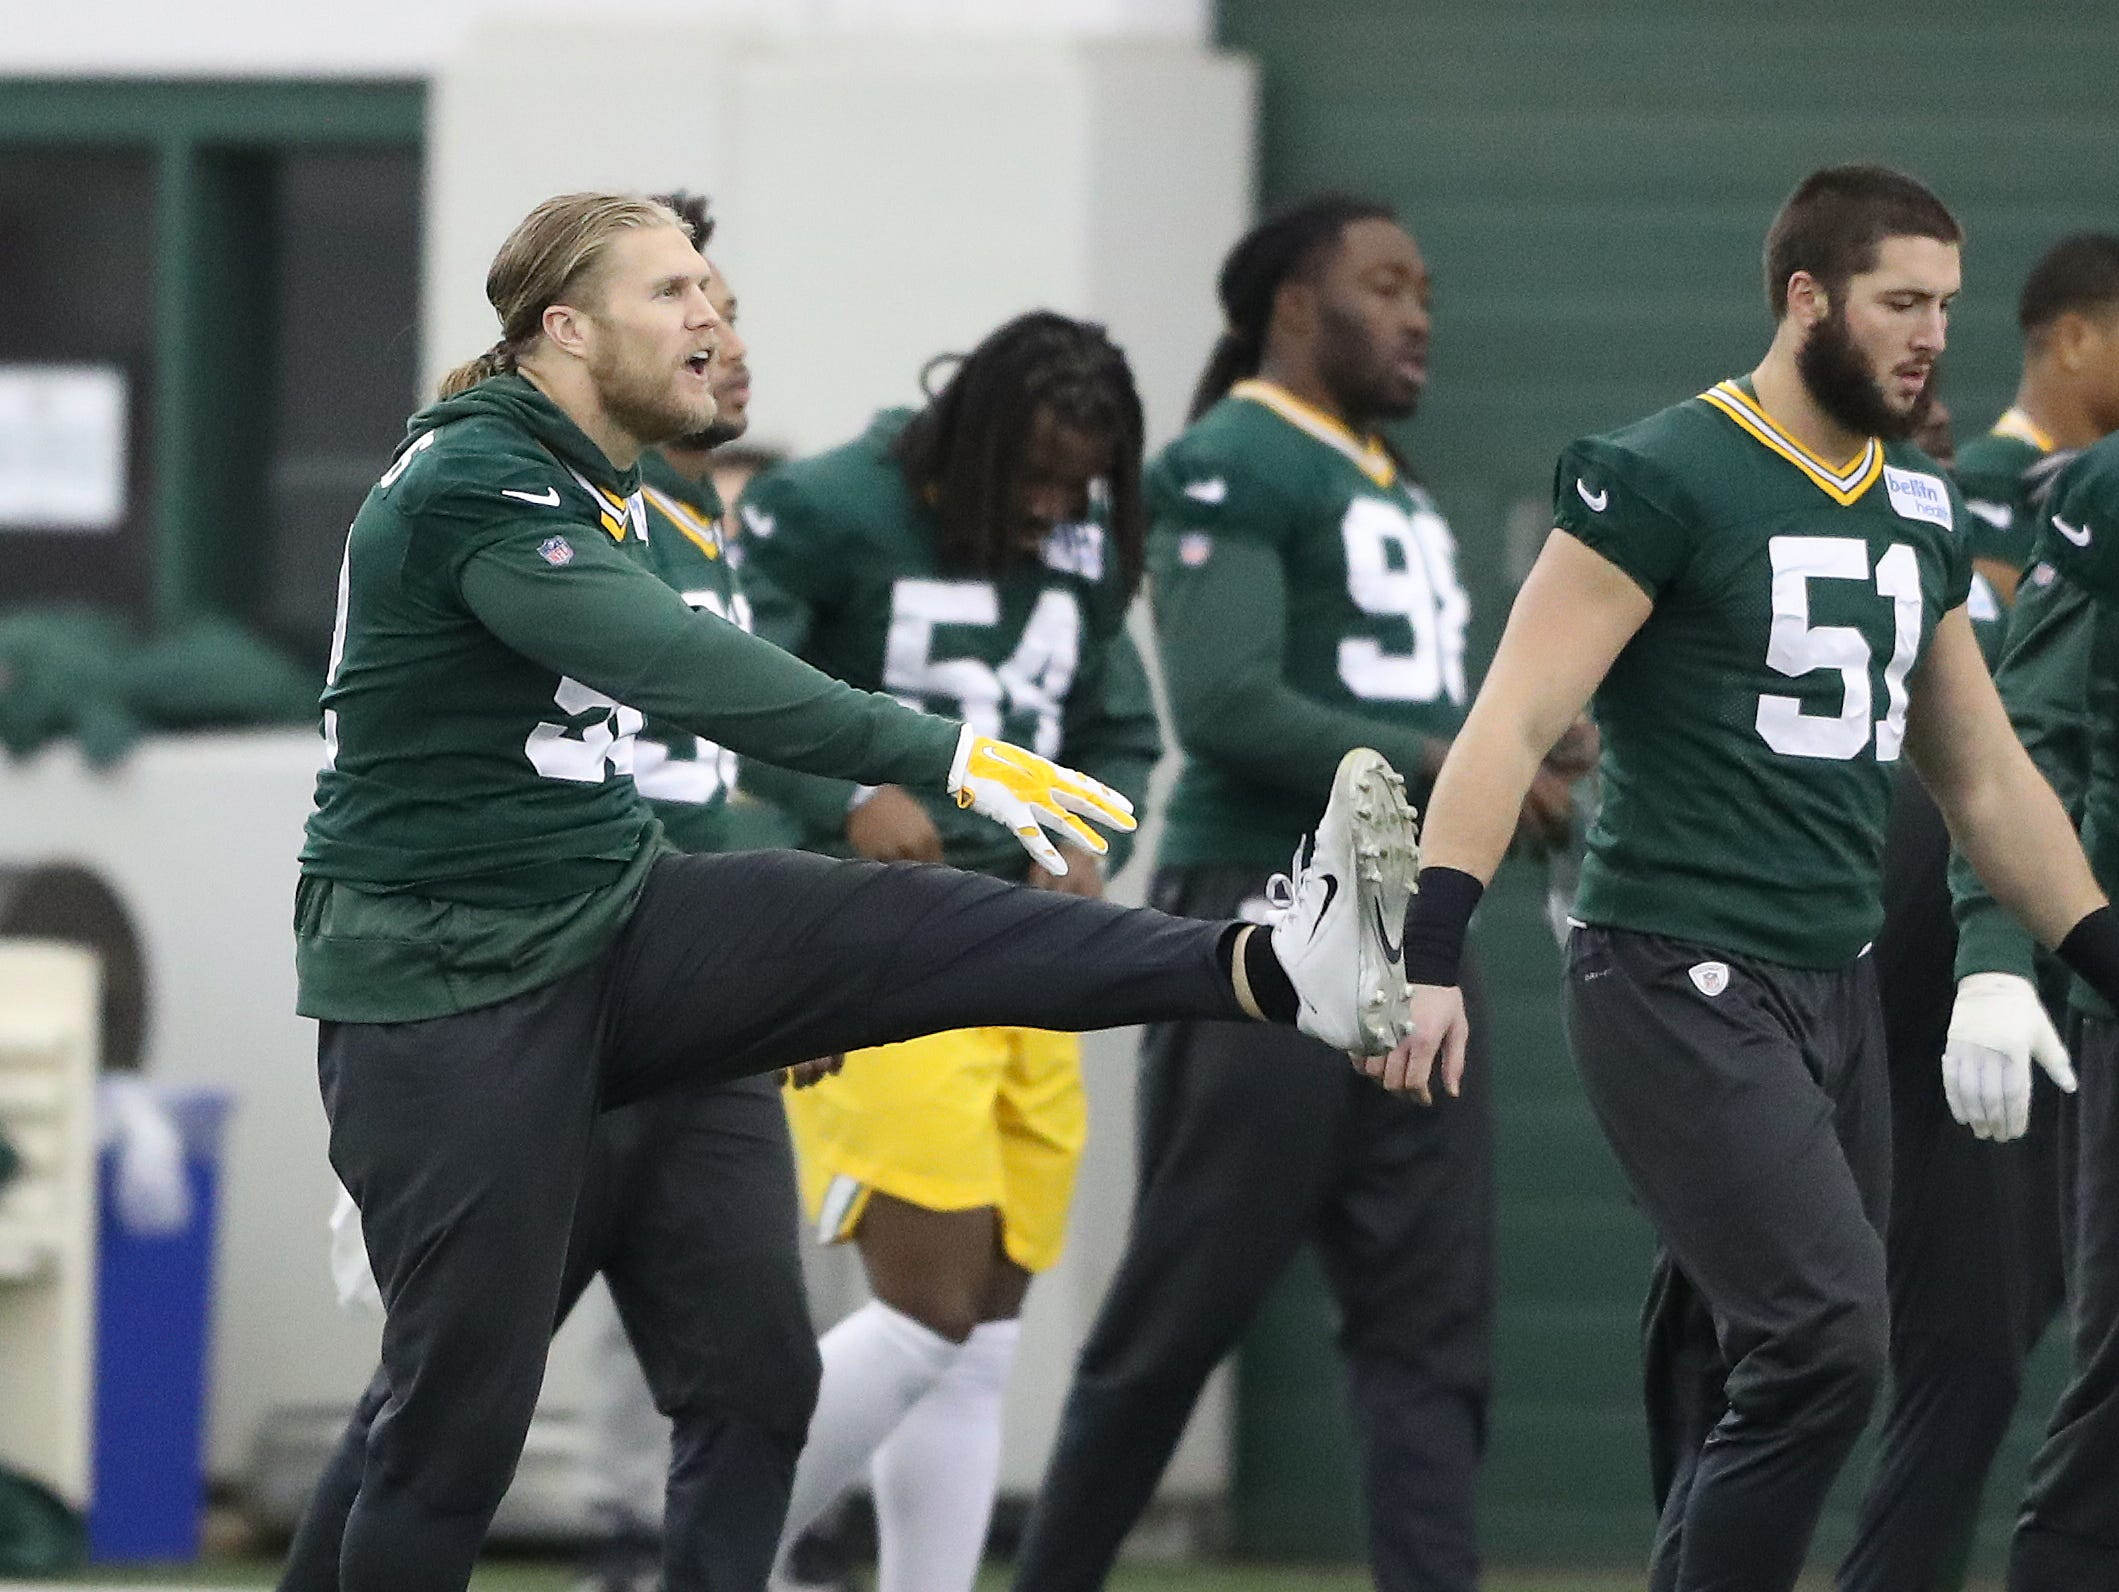 Green Bay Packers outside linebacker Clay Matthews (52) warms up during practice Wednesday, December 12, 2018 in the Don Hutson Center in Ashwaubenon, Wis.